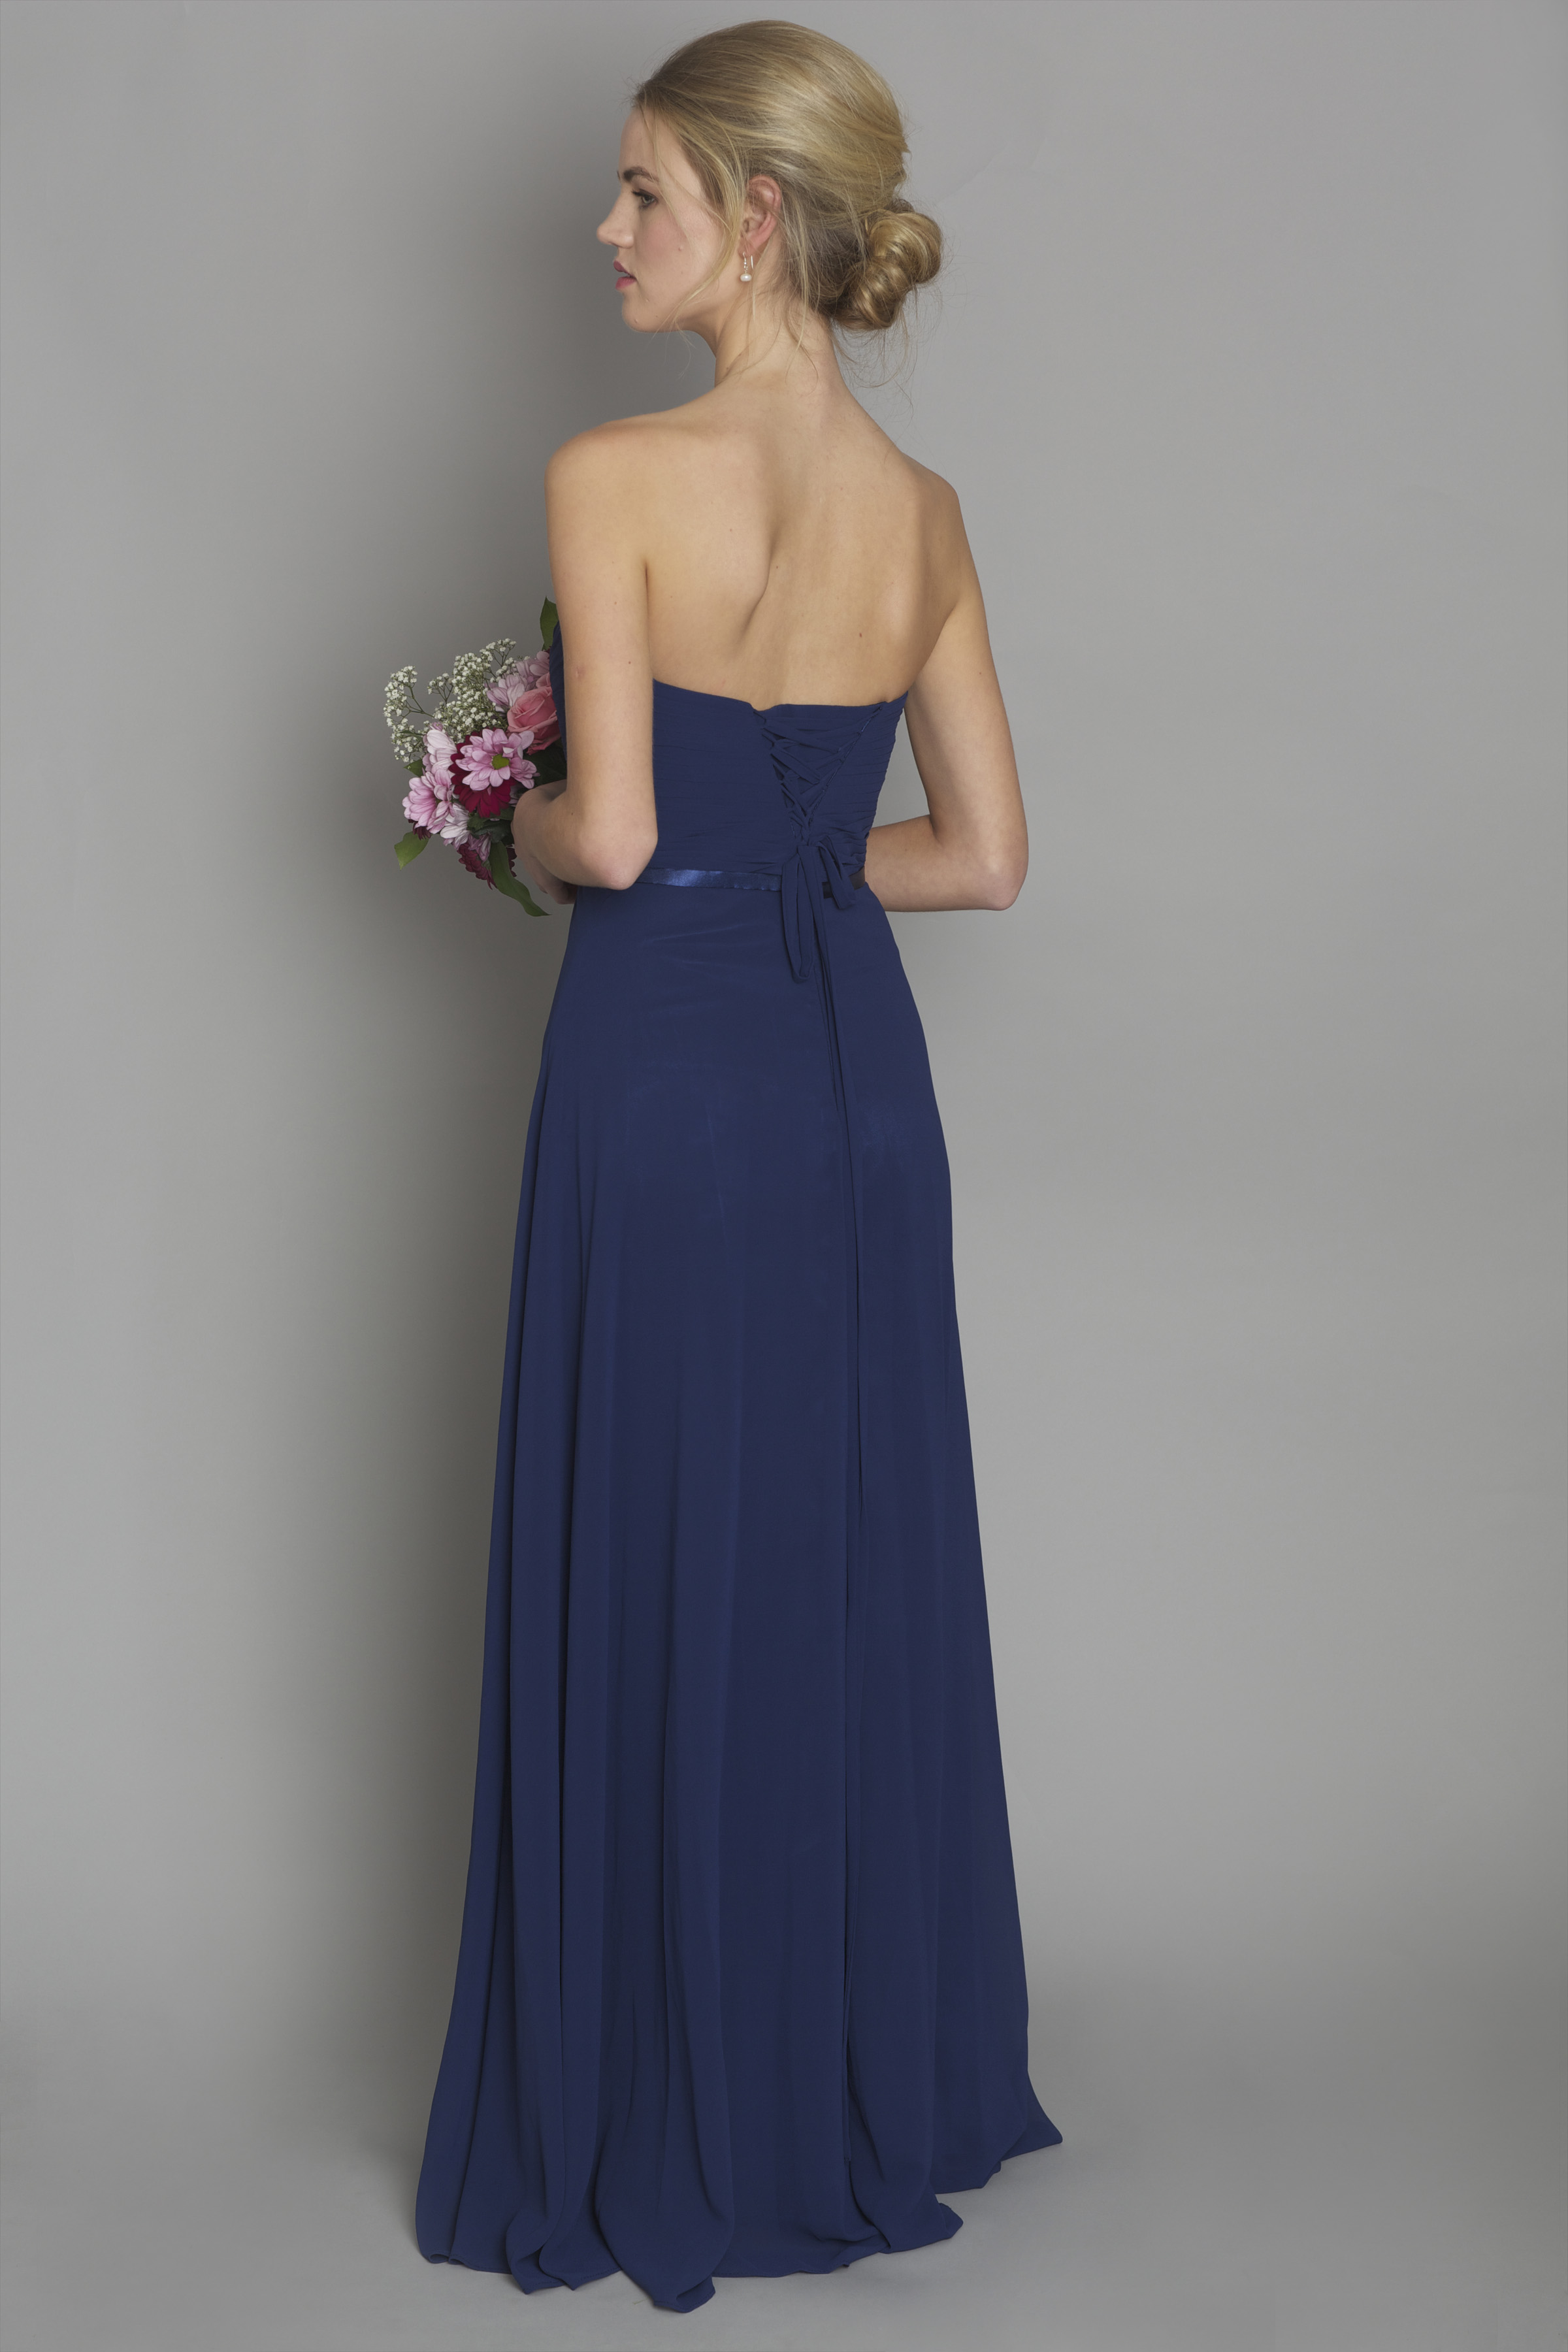 Navy style dc1184 bridesmaid evening debs dresses from dresscode navy style dc1184 ombrellifo Choice Image